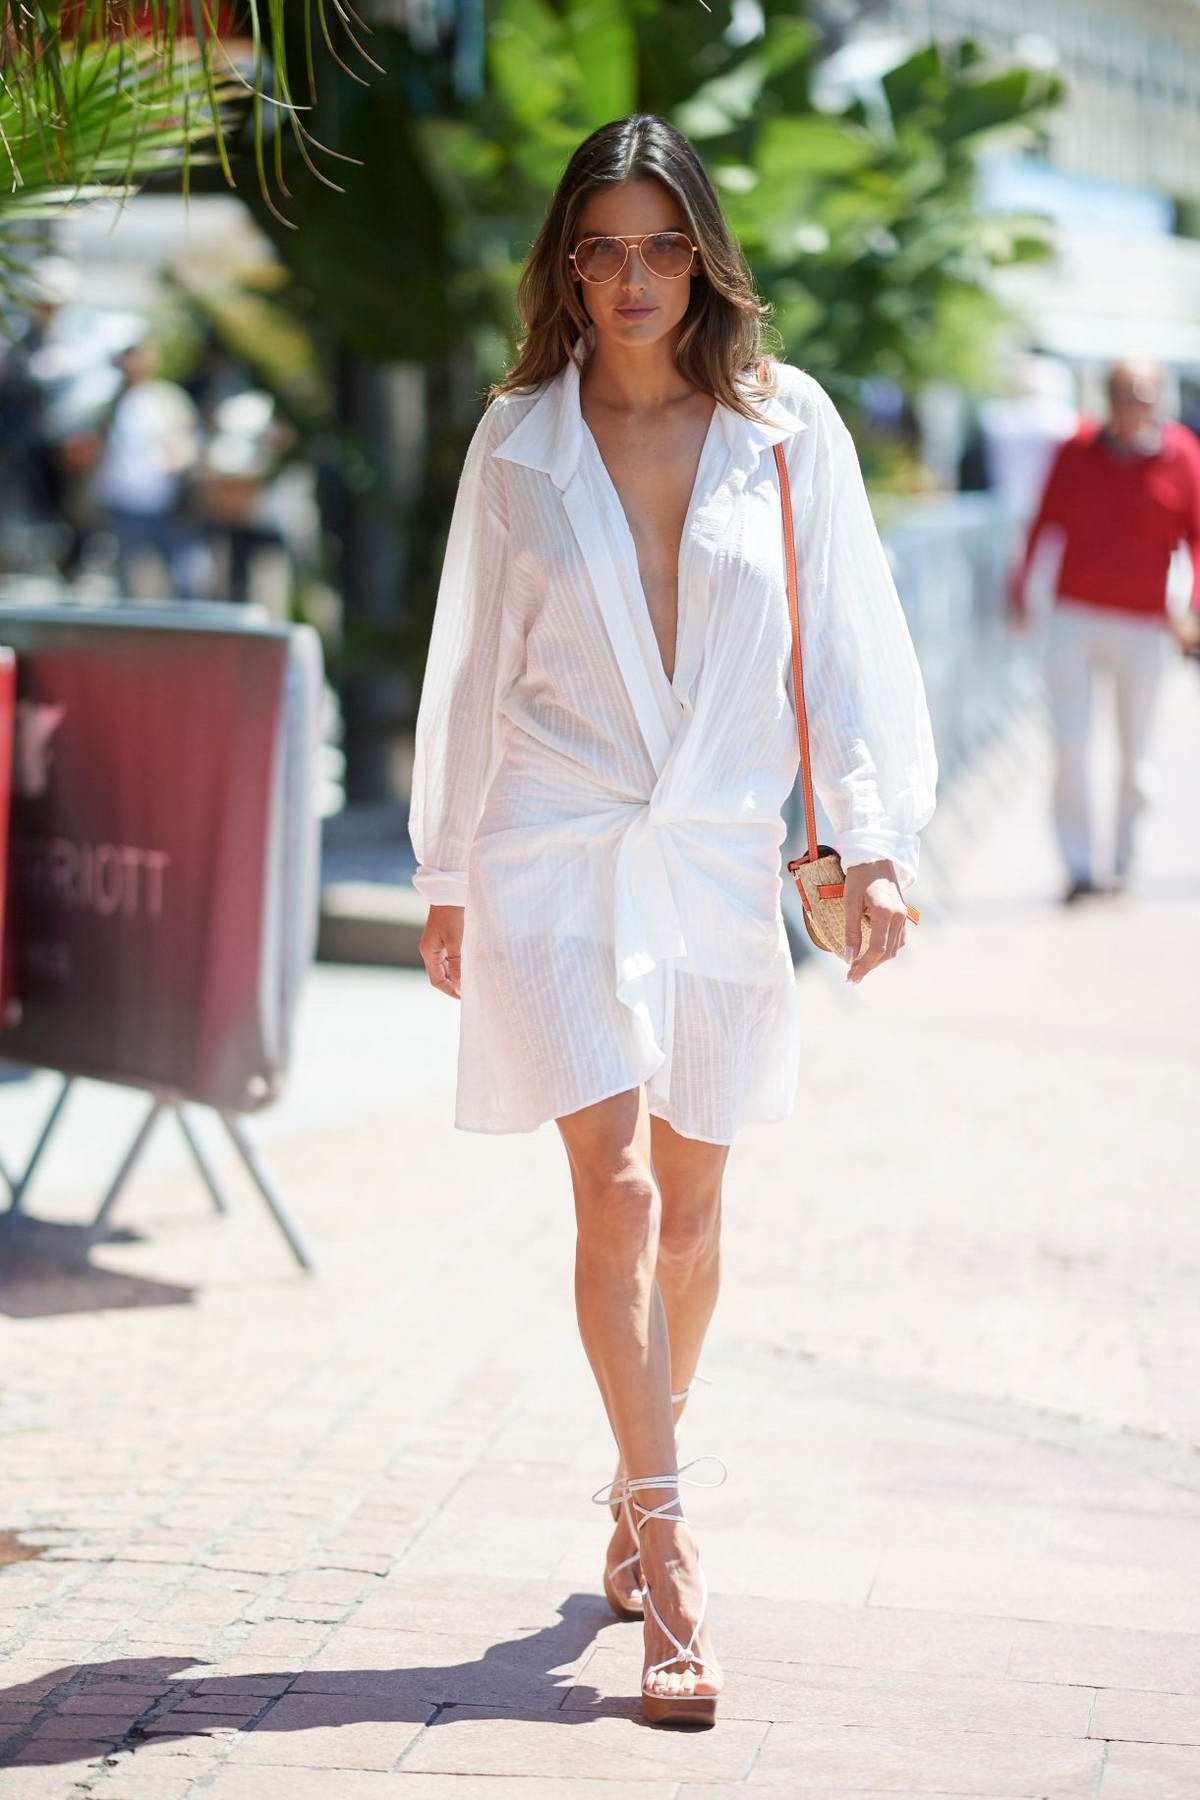 Alessandra Ambrosio looks stunning as she steps out on the Croisette during the 72nd Cannes Film Festival in Cannes, France